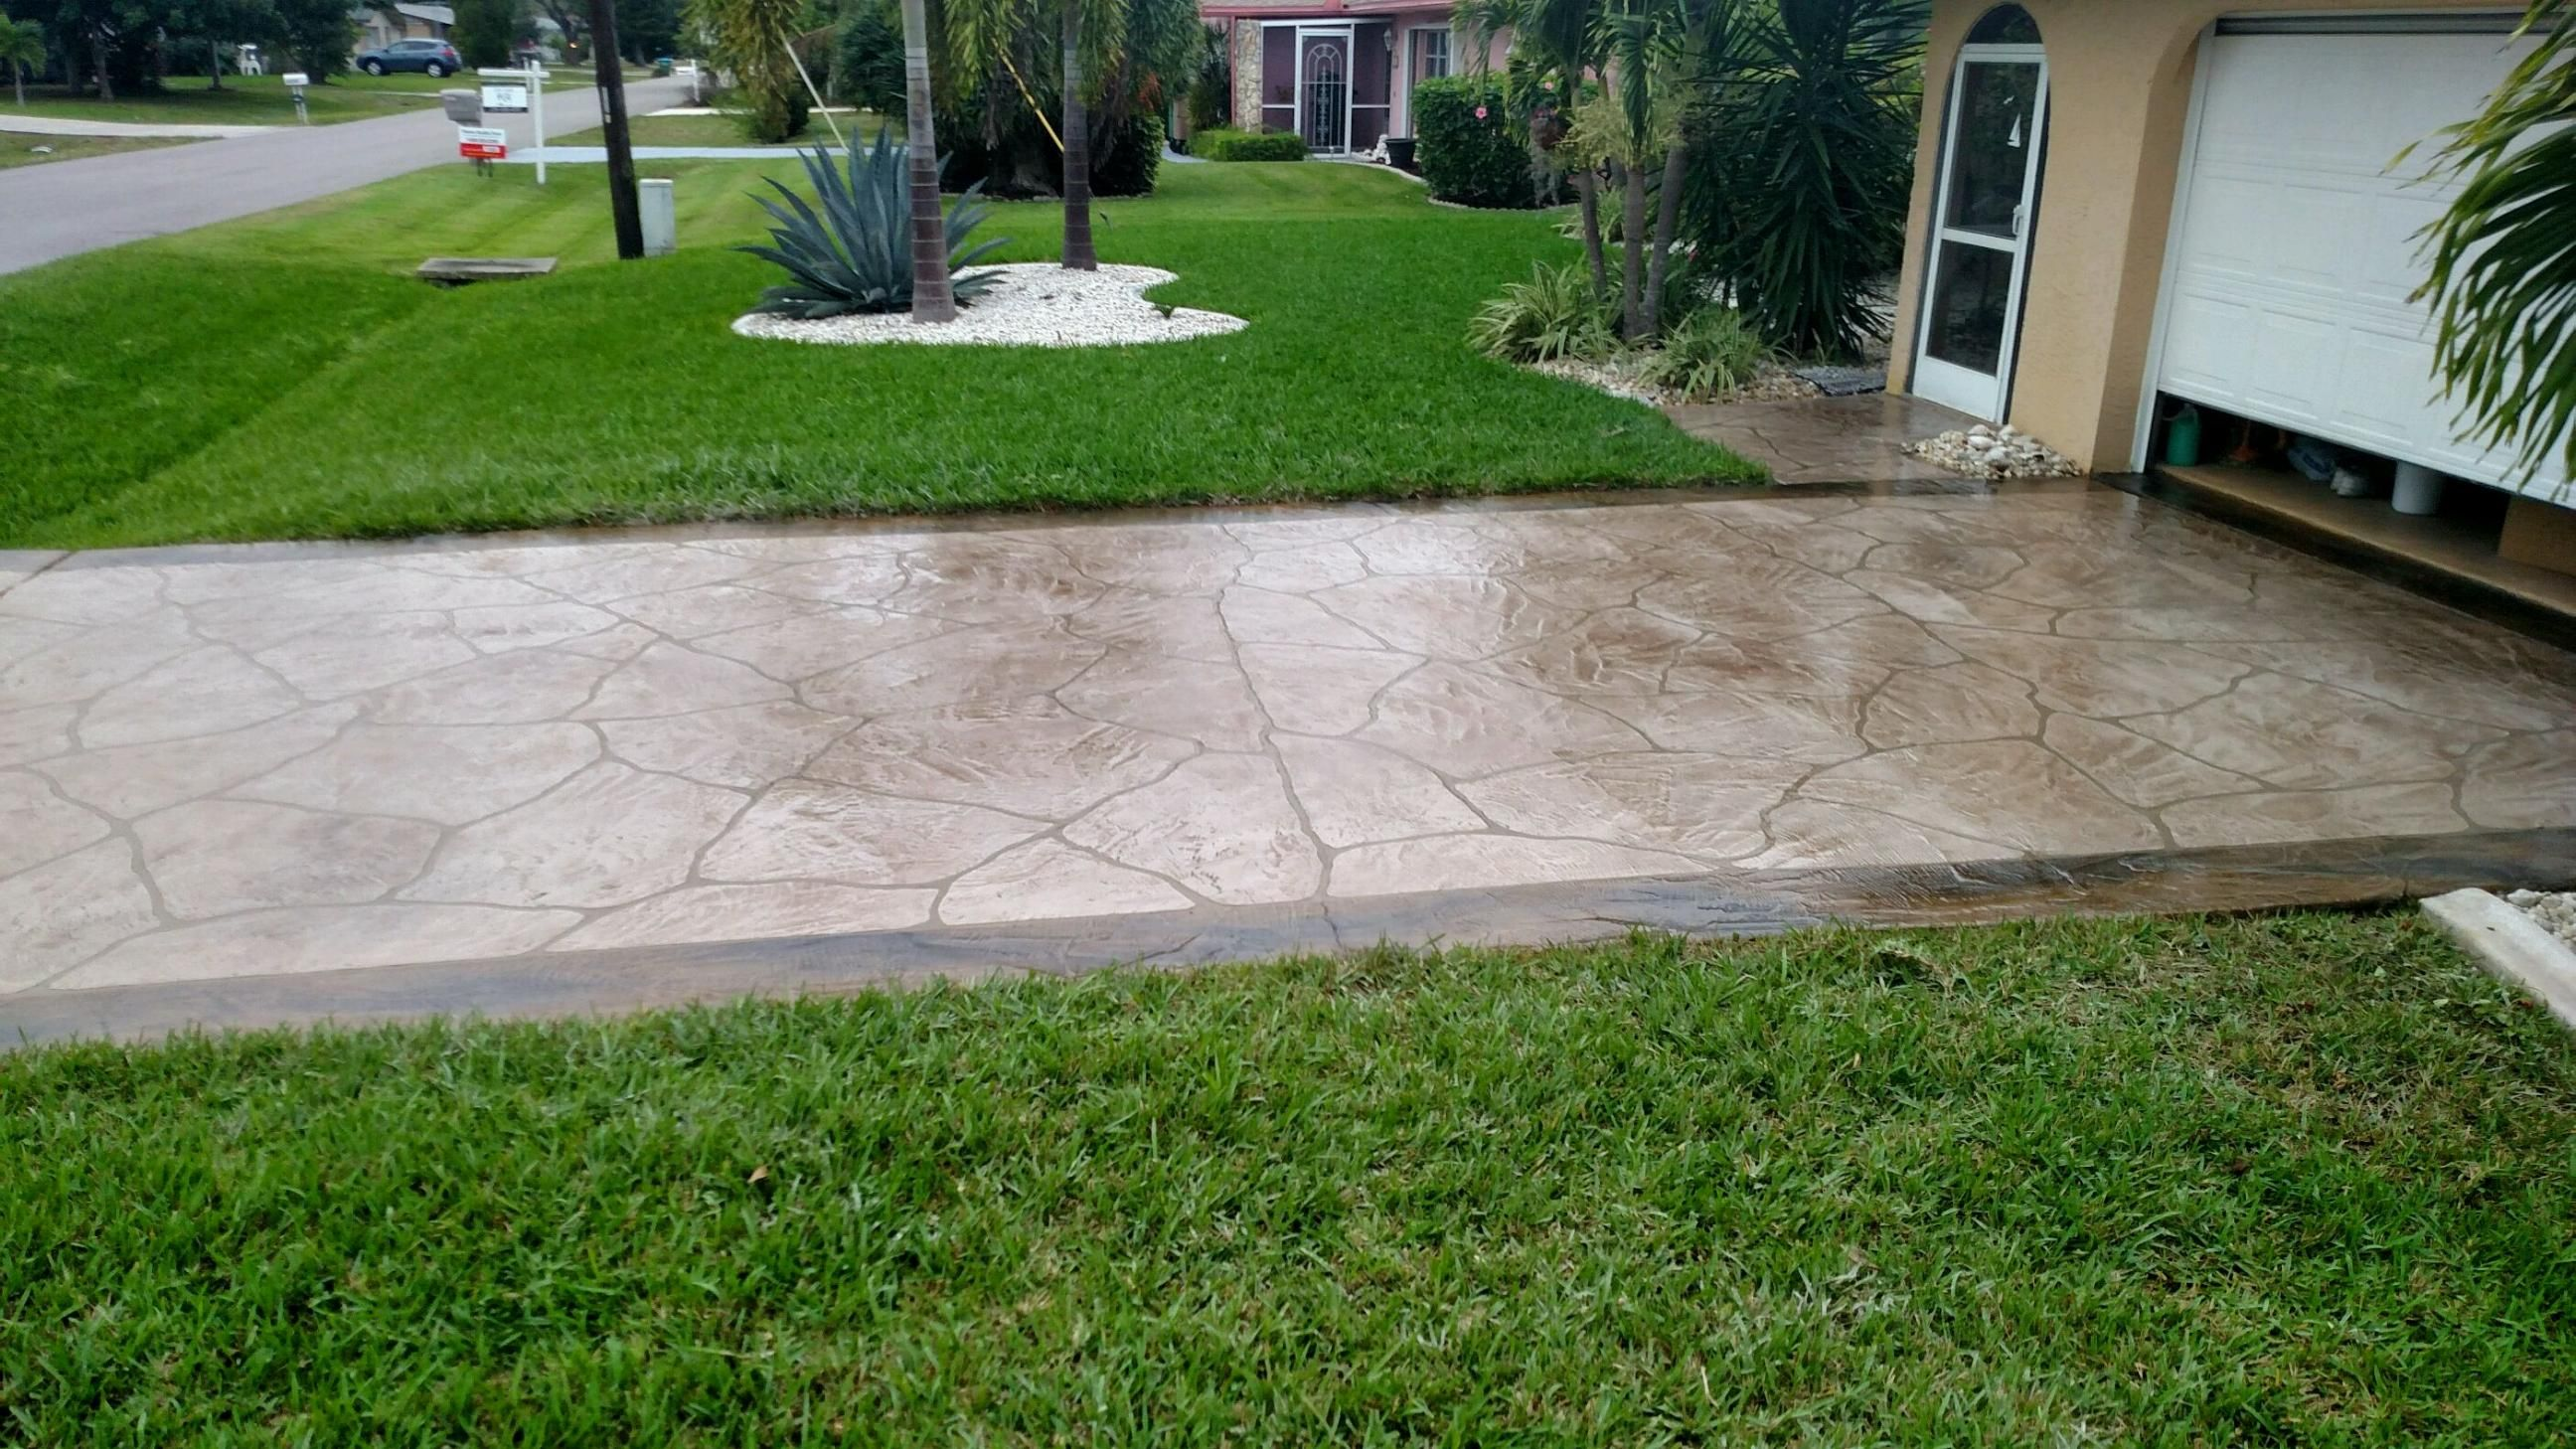 Driveway In Cape Coral Fl See More At Http Msdcurbing Com